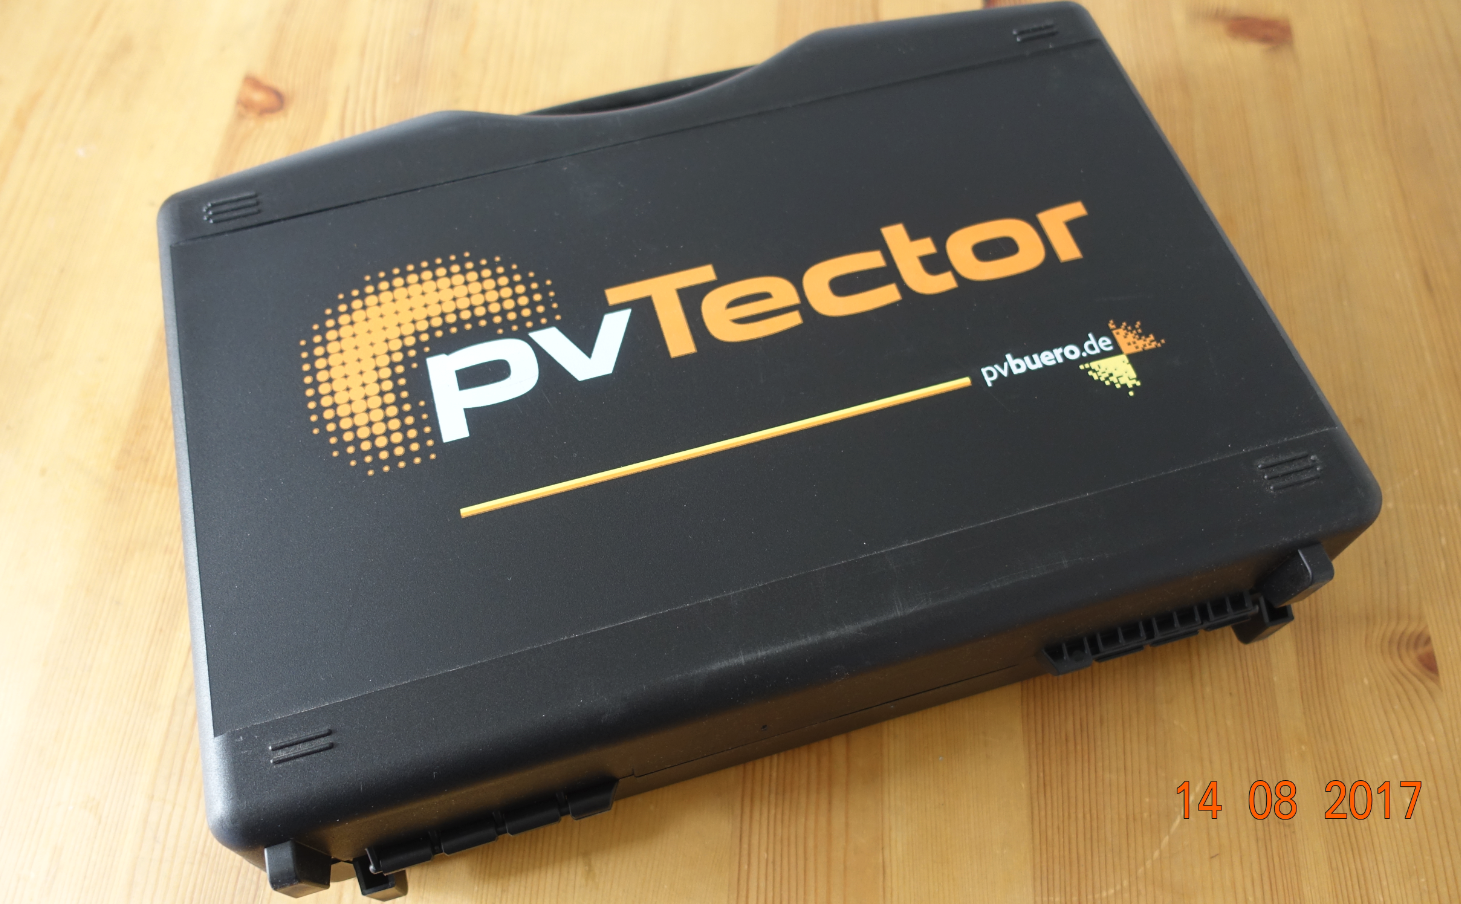 pvTector